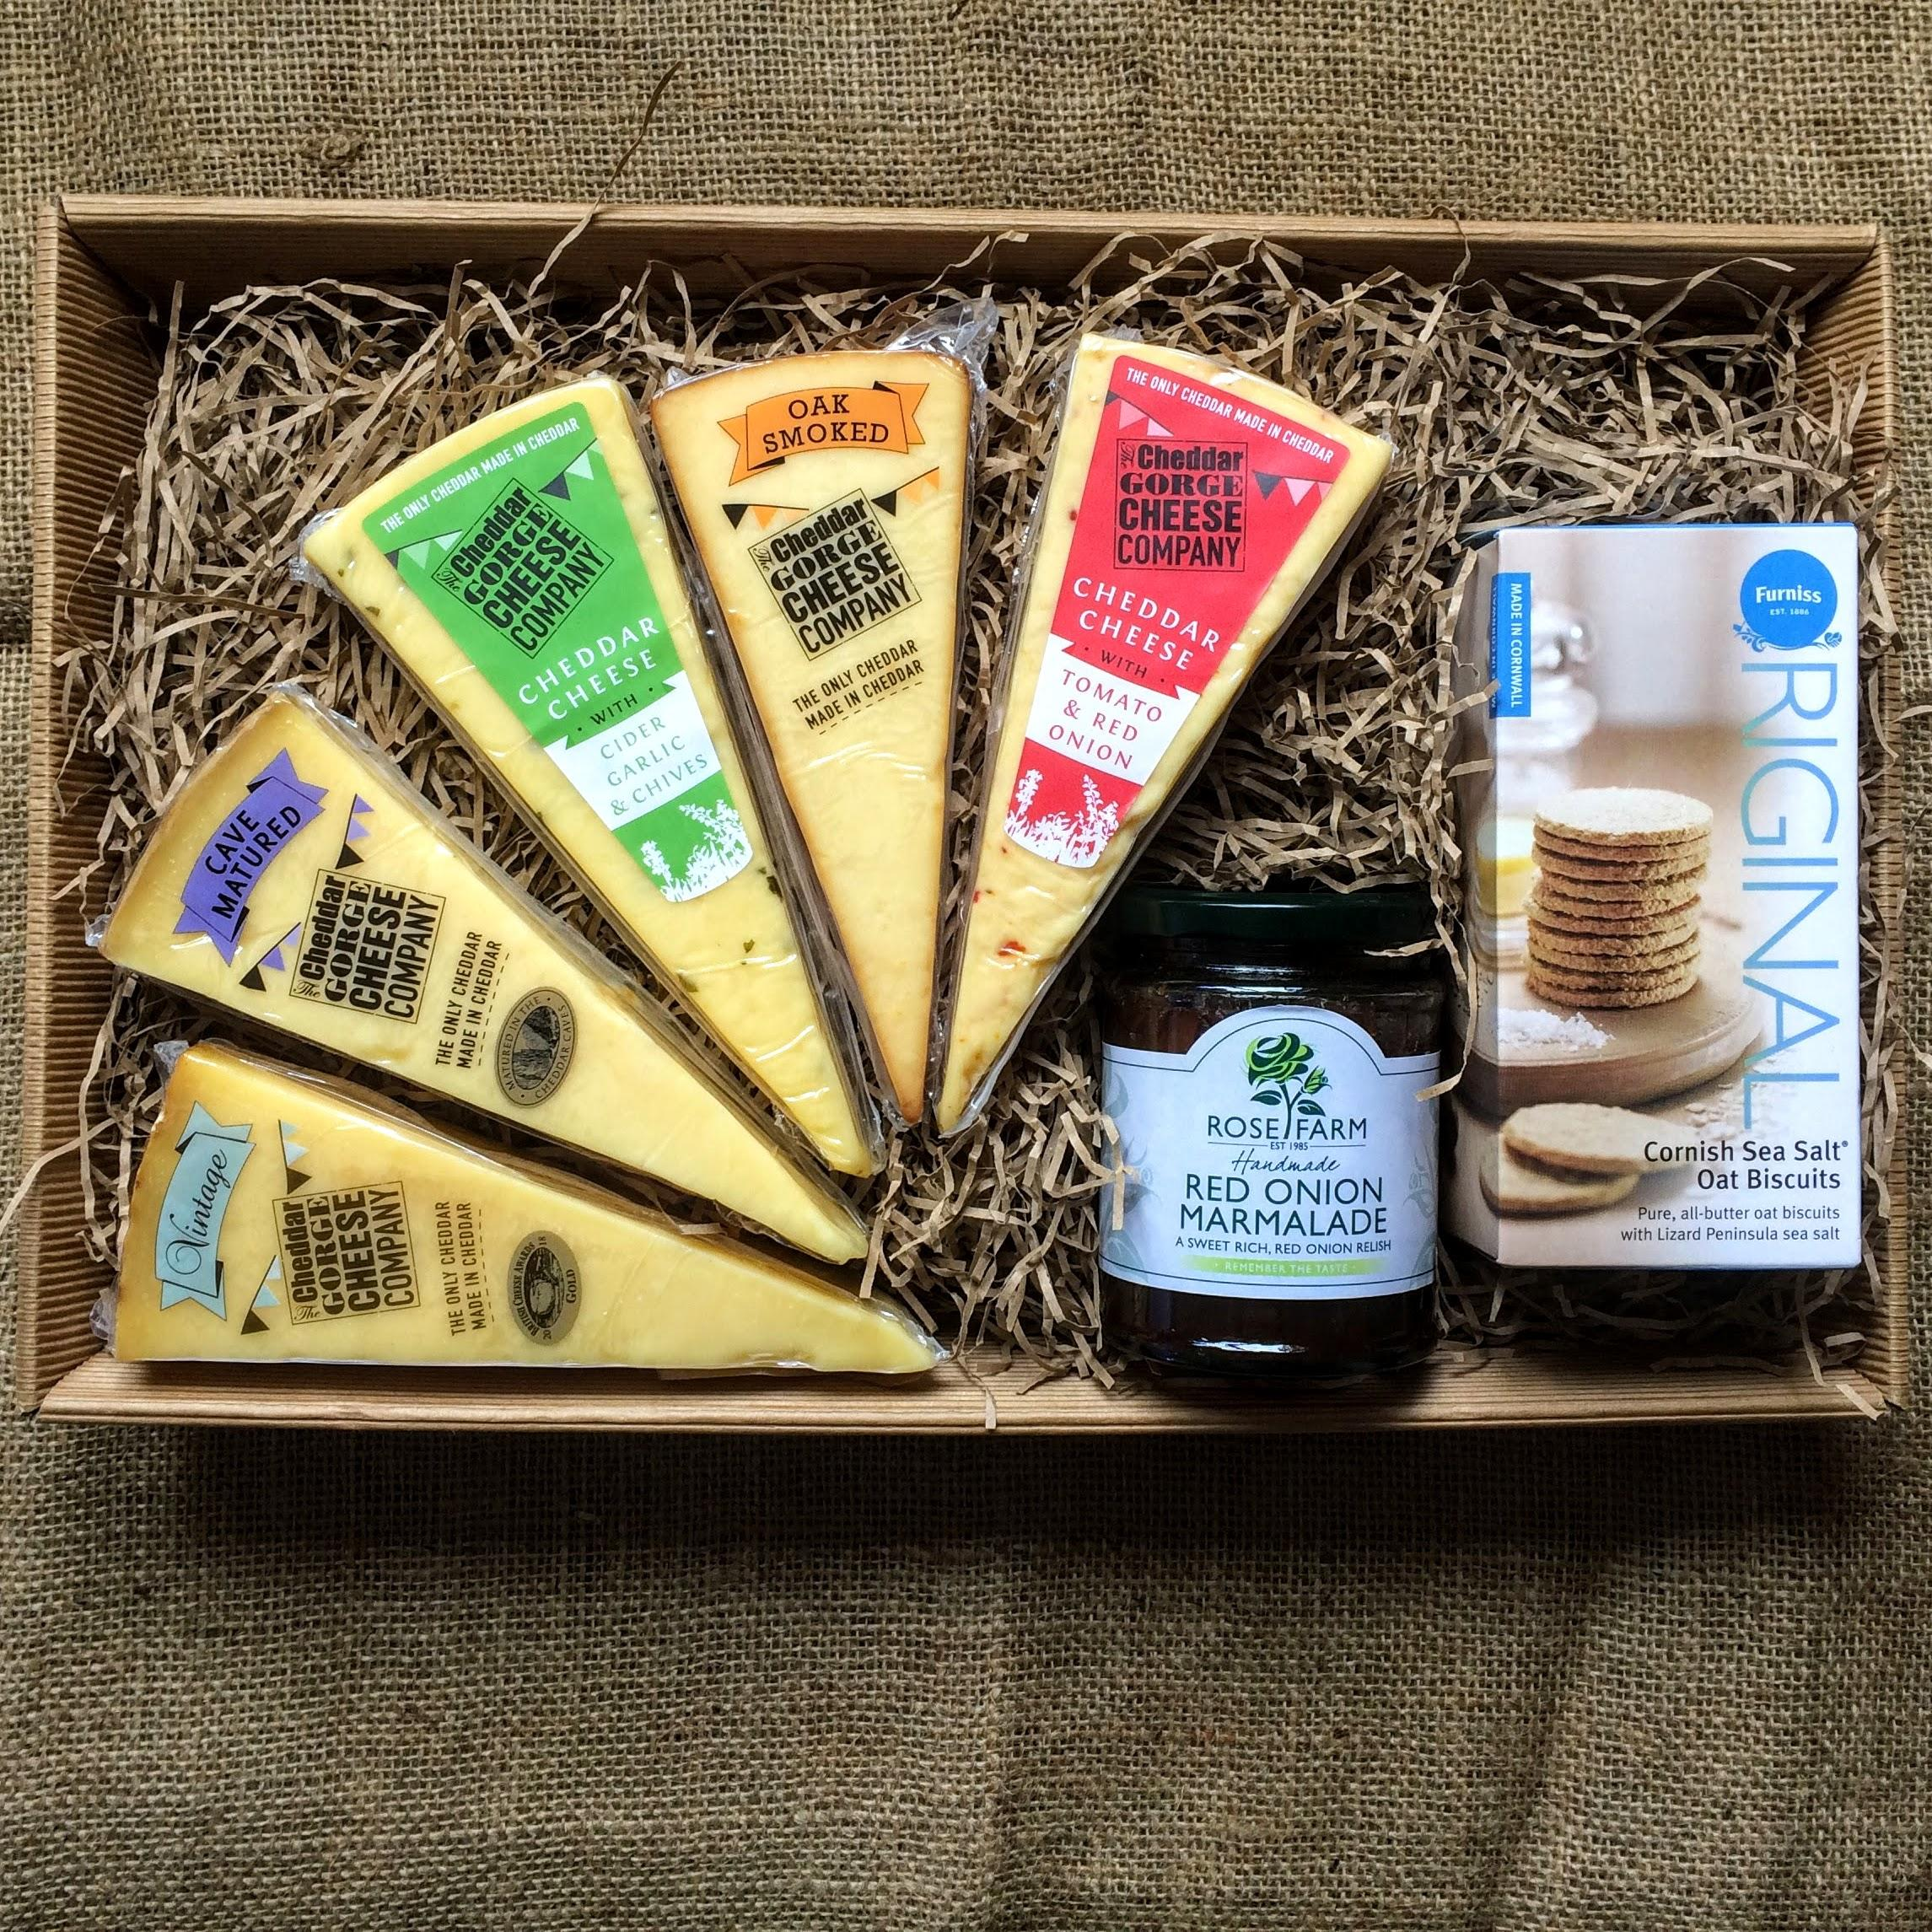 A decorative cardbaord tray containing five portions of premium cheddar, a jar of relish and a pack of Cornish Sea Salt biscuits.